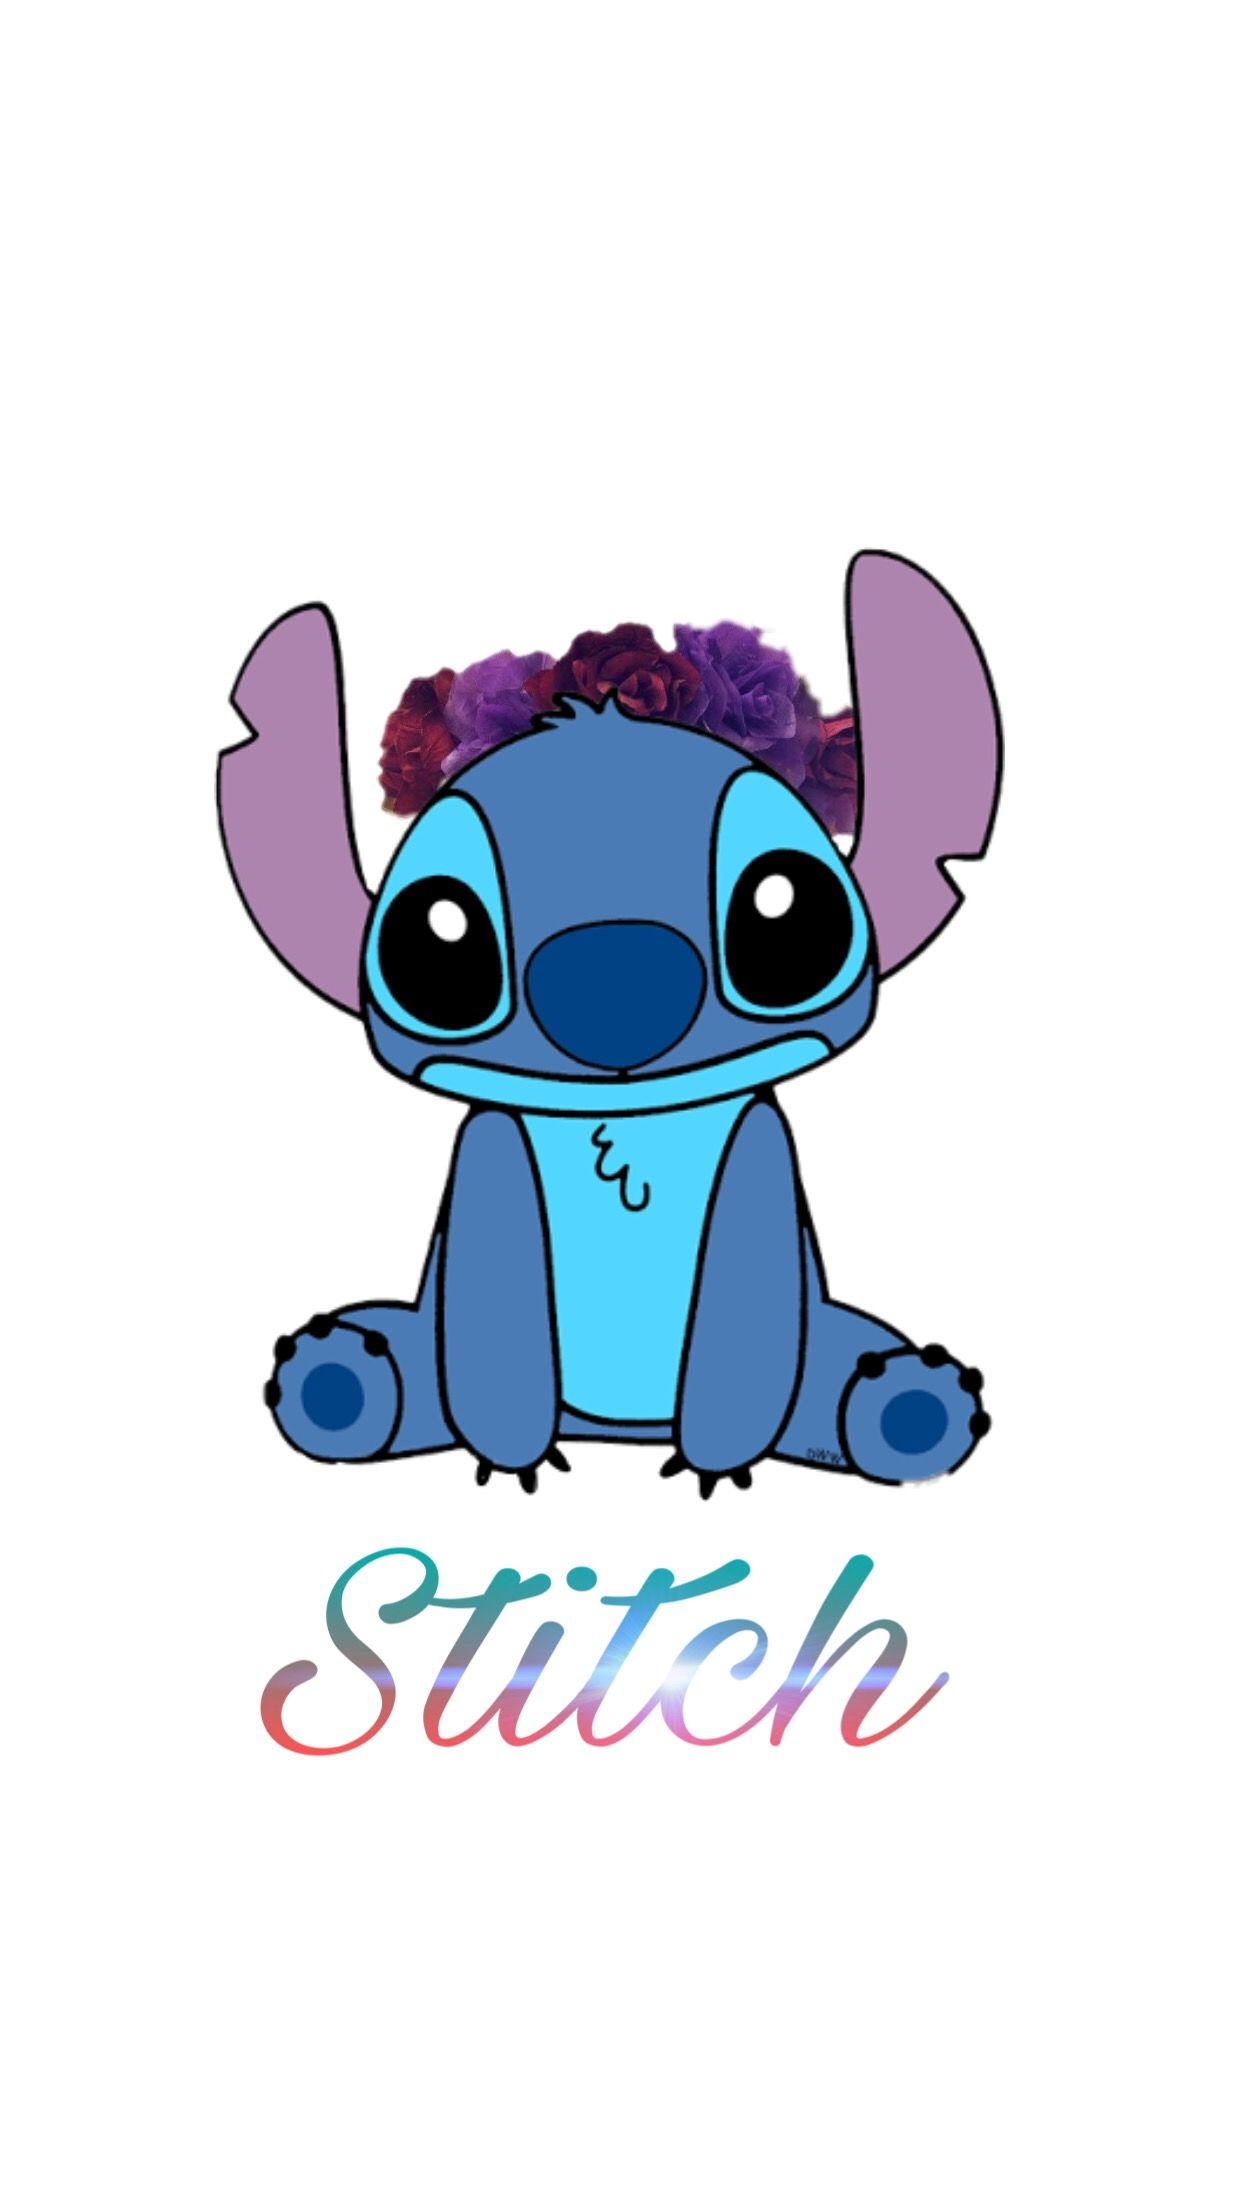 Lilo And Stitch Iphone Wallpapers Top Free Lilo And Stitch Iphone Backgrounds Wallpaperaccess